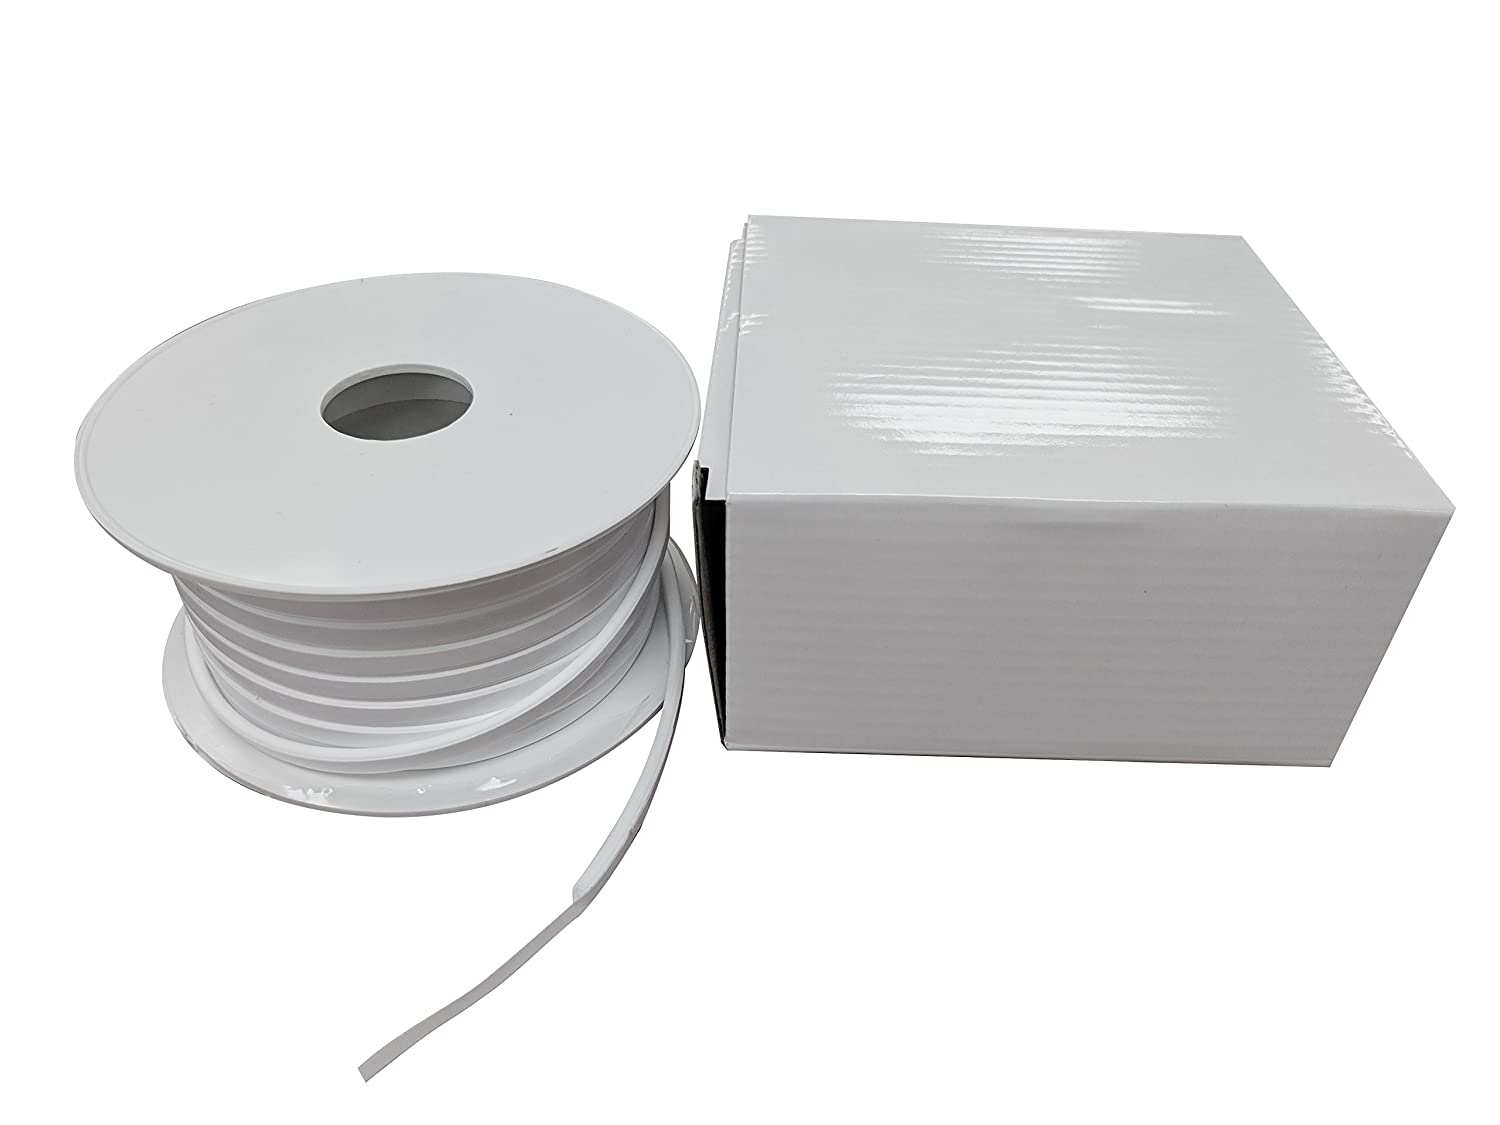 1500.12550 1500//Teadit 24B White PTFE Joint Sealant for Applications in Steel Glass Lined Sterling Seal and Supply Concrete Lids PVC and Fiber Glass Pipe Flanges 1//8 Wide Heat Exchangers STCC Fume Ducts 50 1//8 Wide 50/' Sur-Seal